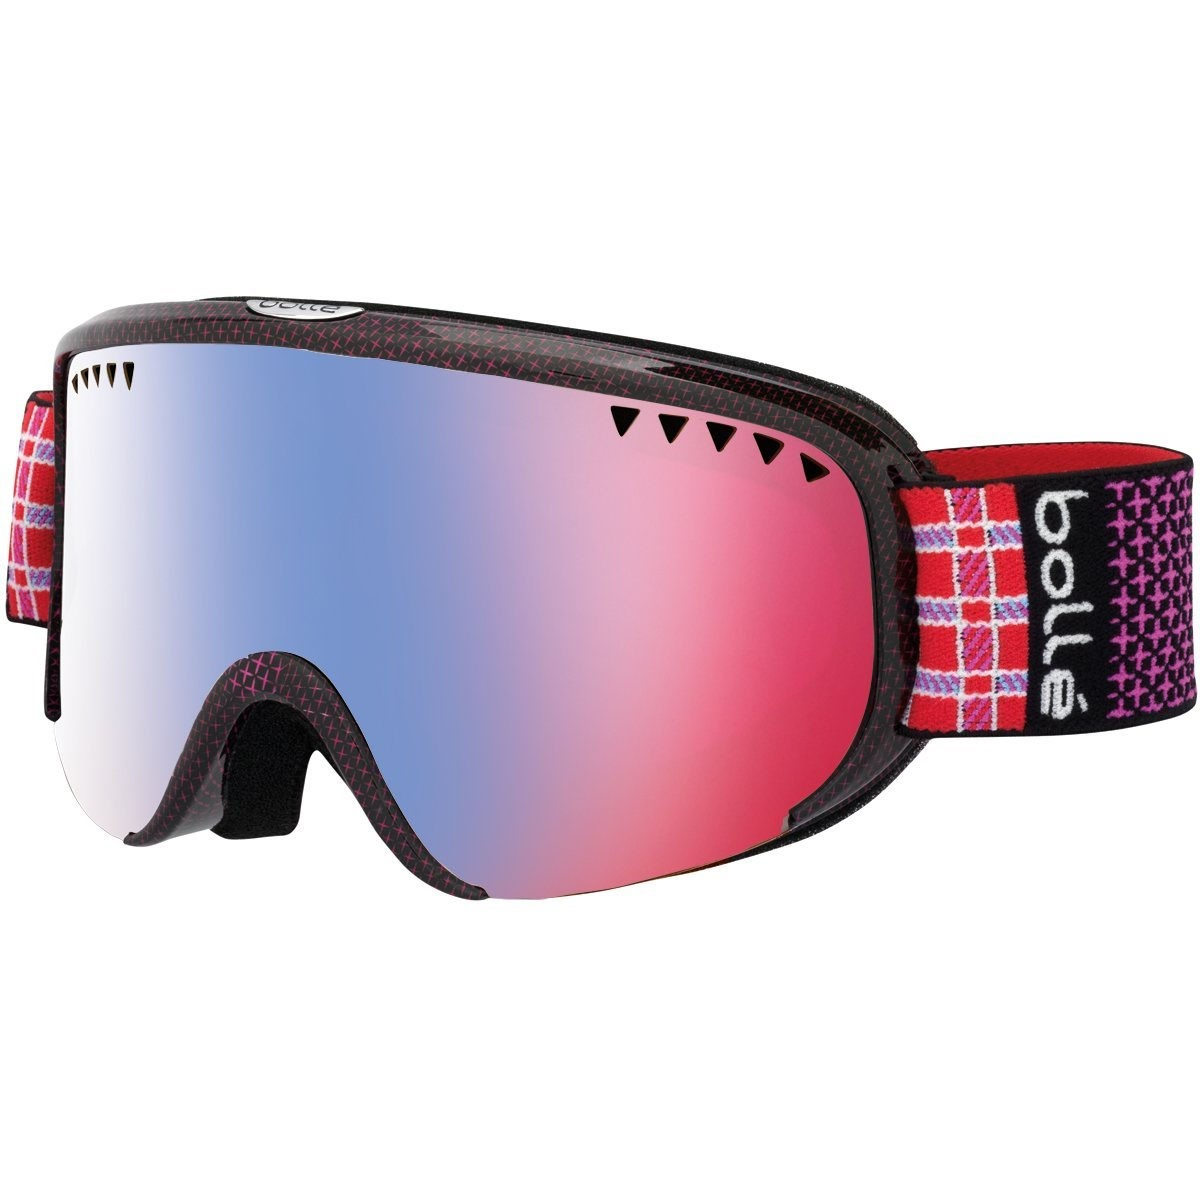 *Bolle Goggles 21317 Shiny Pink Plaid Vermillon Blue Scarlet